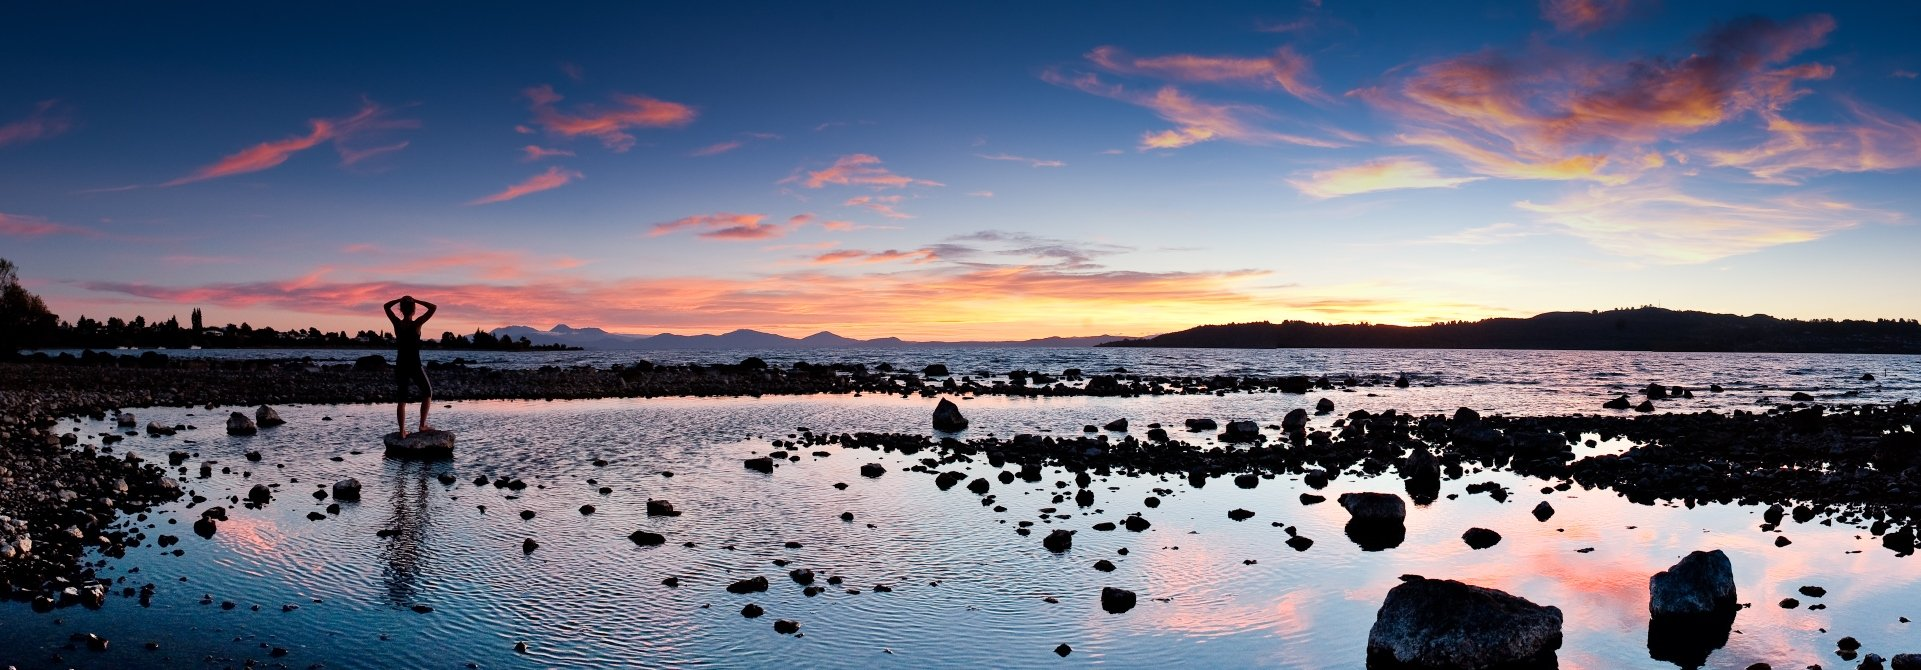 Taupo-Scenery-Sunset5.jpg